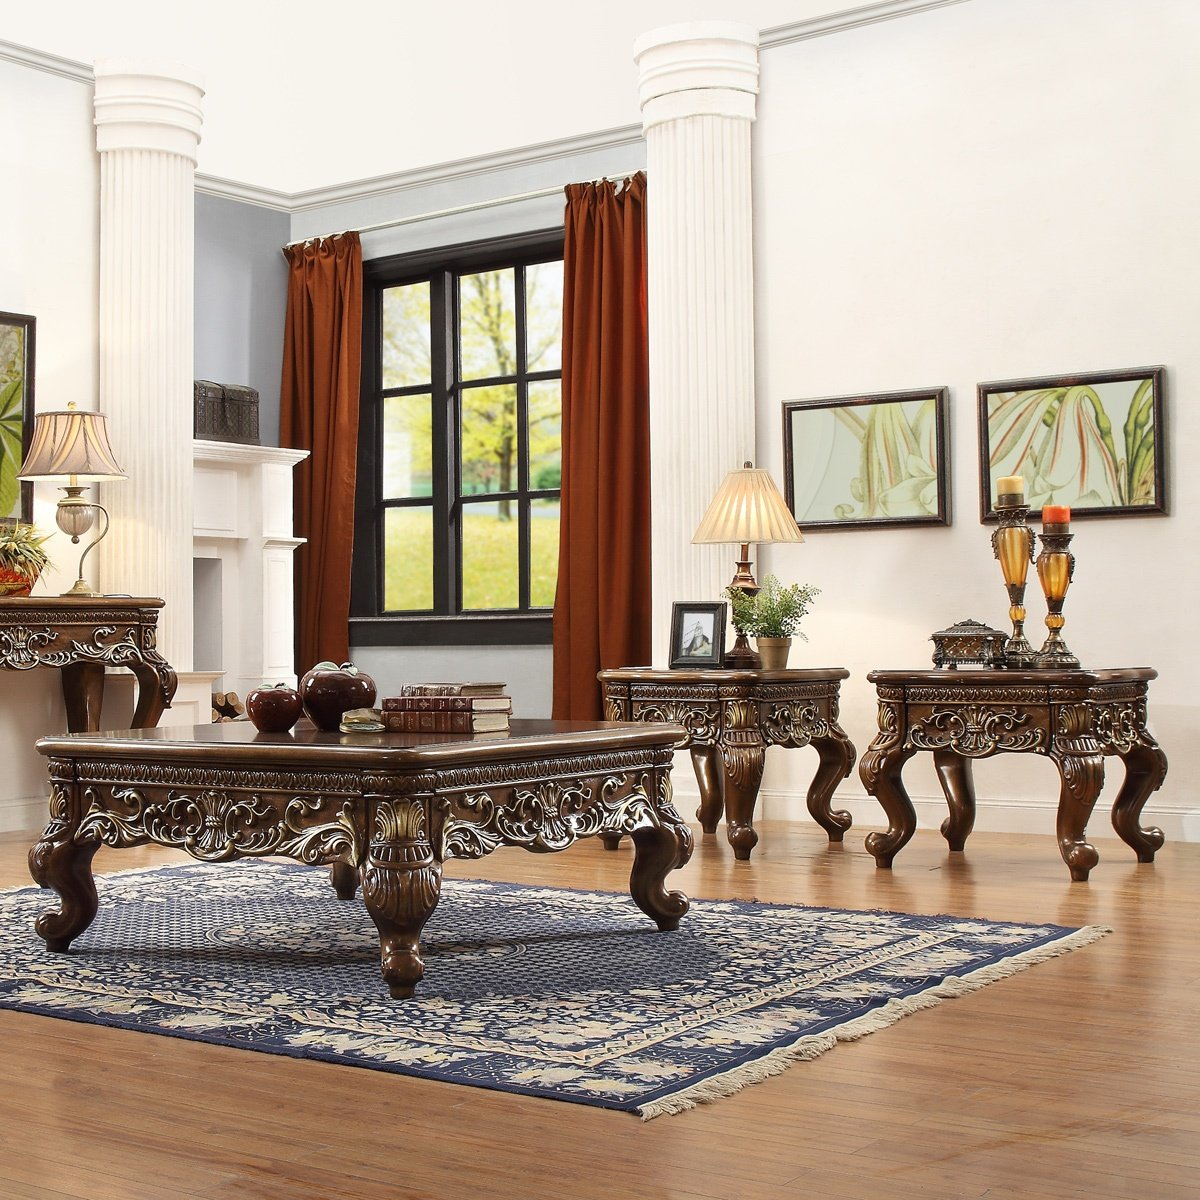 Traditional Coffee Table Set 3 PCS in Brown Wood Traditional Style Homey Design HD-1306